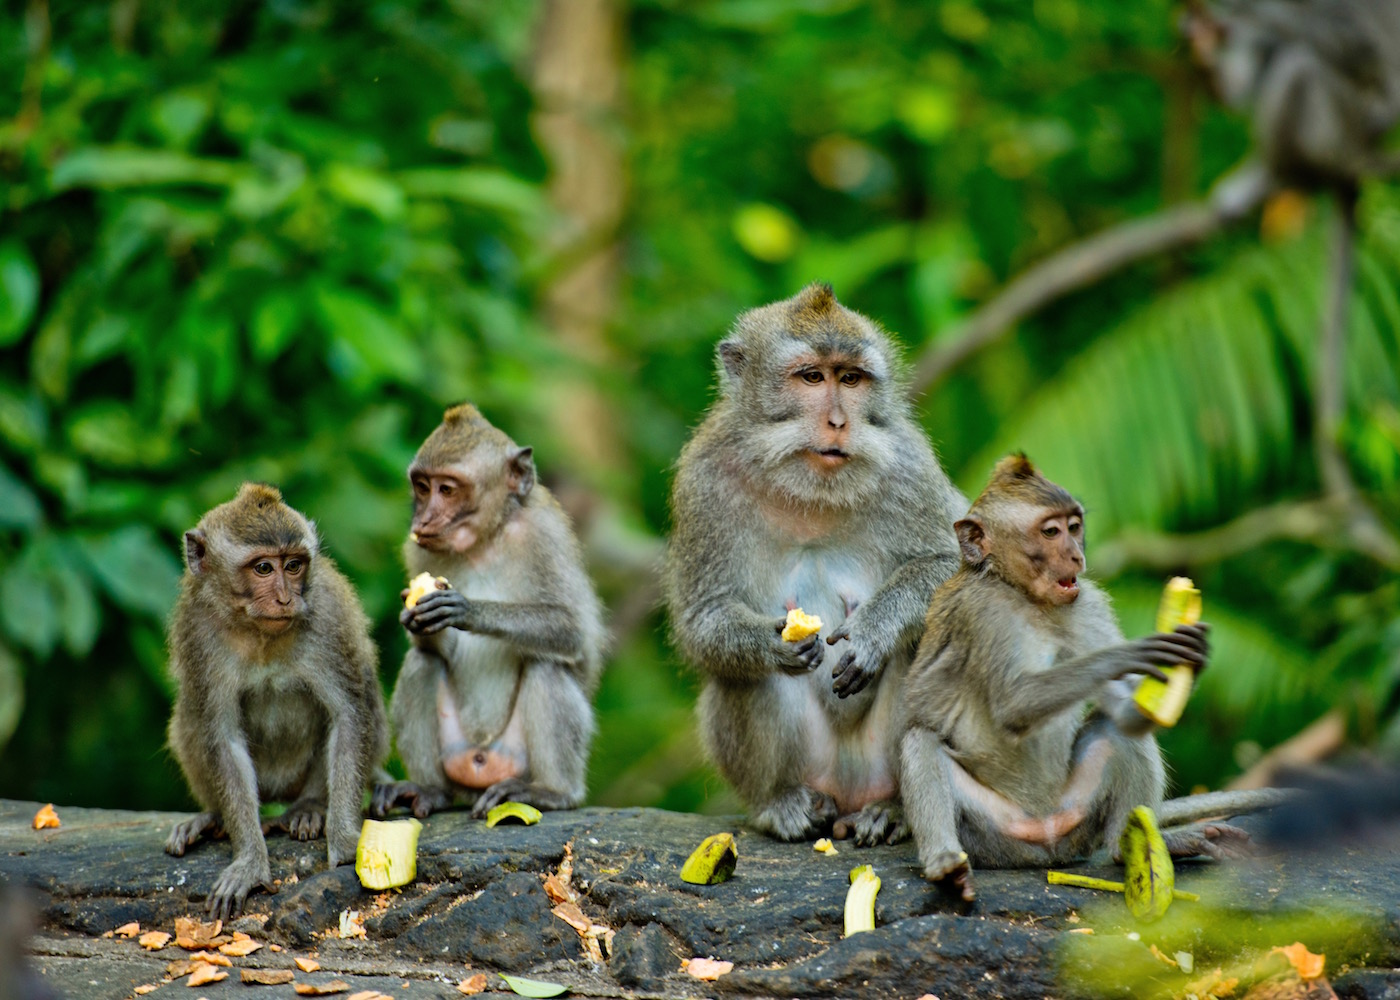 Family of monkeys in the Ubud Monkey Forest in Bali, Indonesia